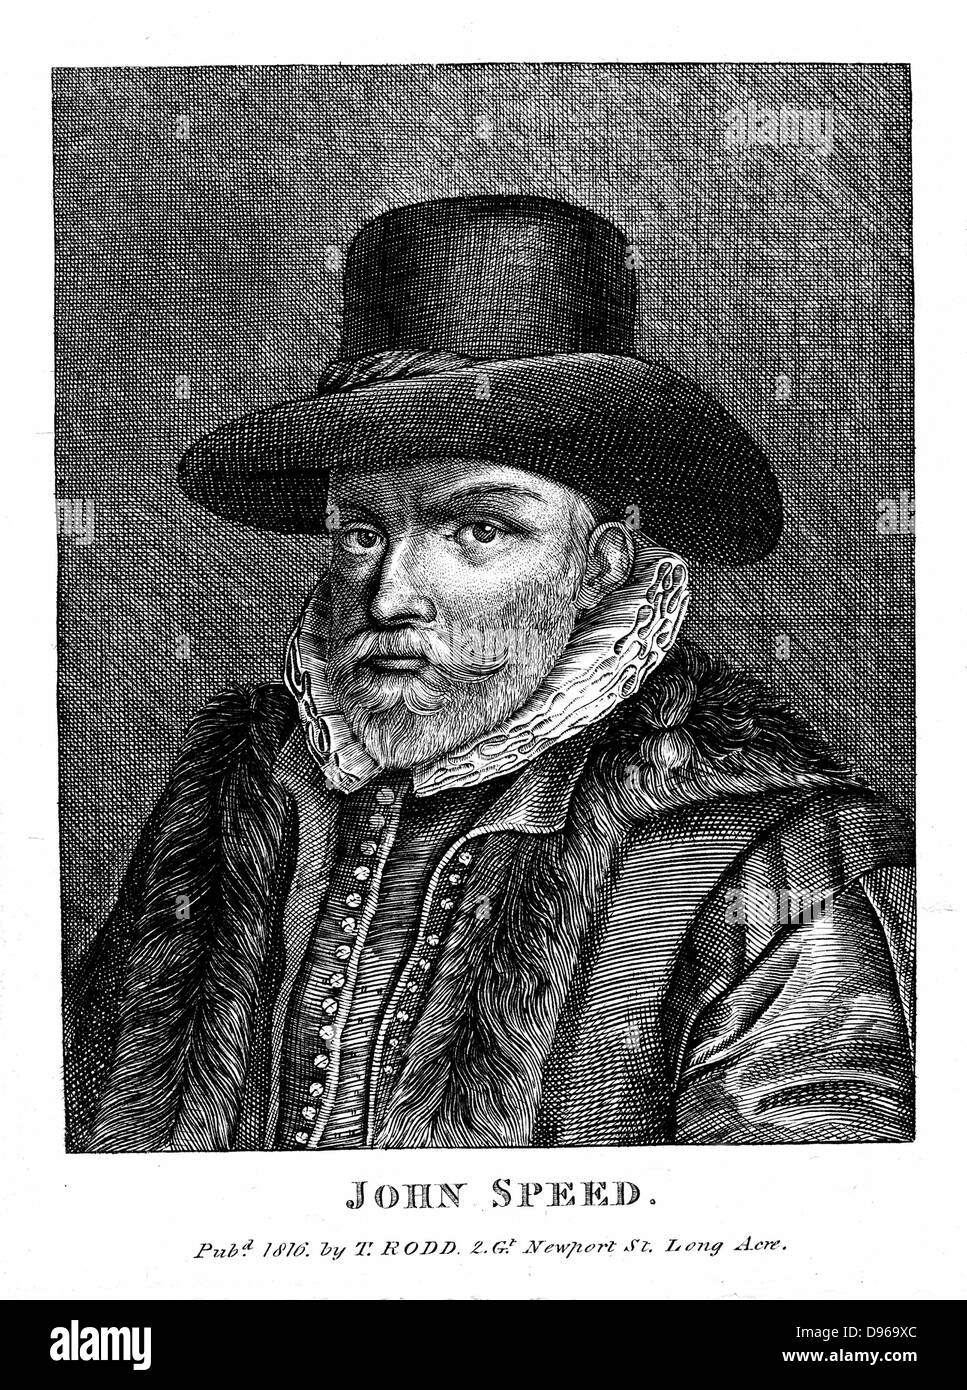 John Speed (1542-1629) English cartographer and historian. Engraving - Stock Image